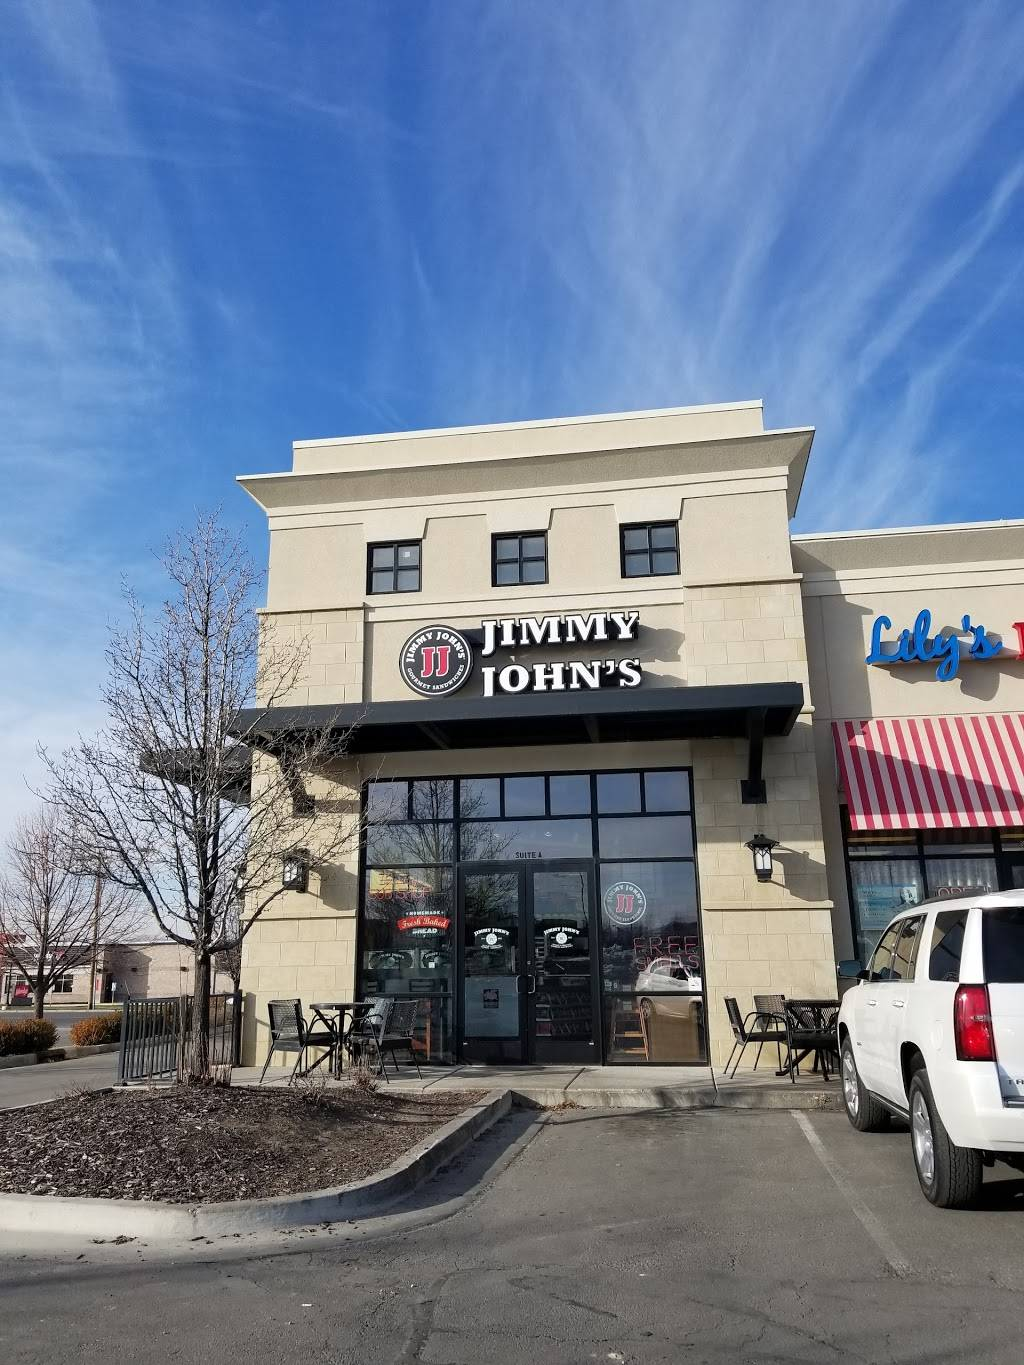 Jimmy Johns | meal delivery | 1952 N 2000 W, Clinton, UT 84015, USA | 8016145272 OR +1 801-614-5272